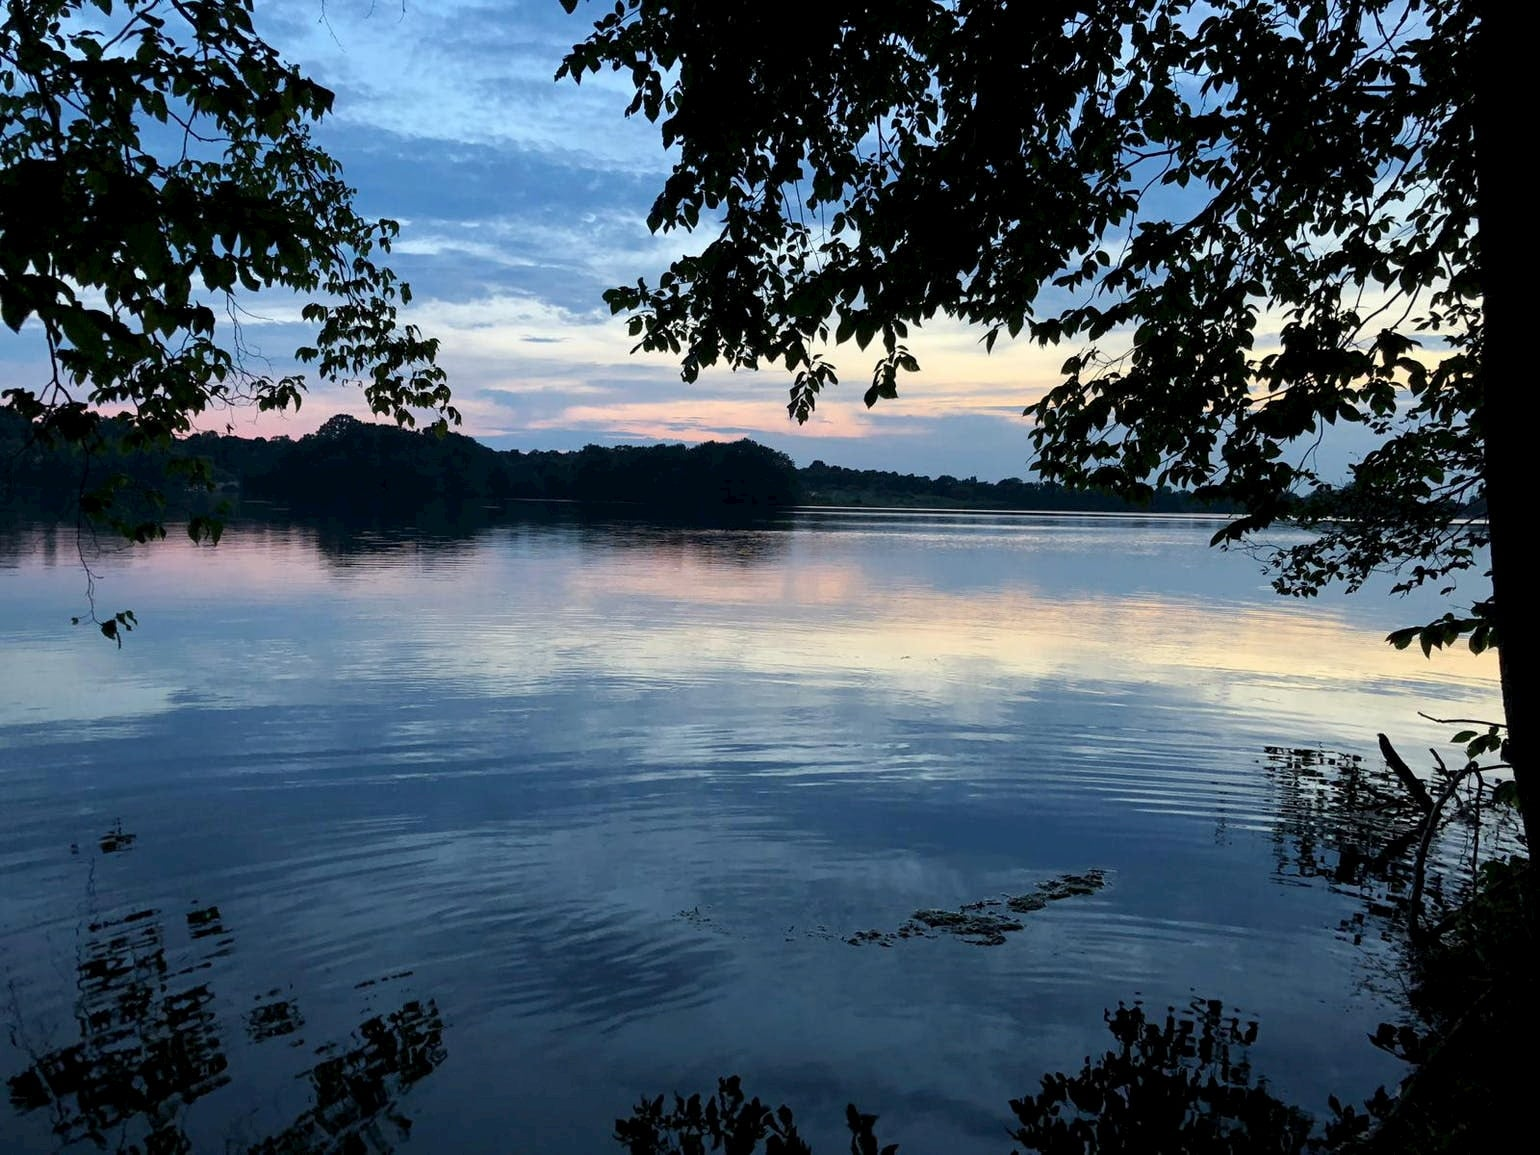 Lake at Iona Recreation Area in Michigan during dusk.